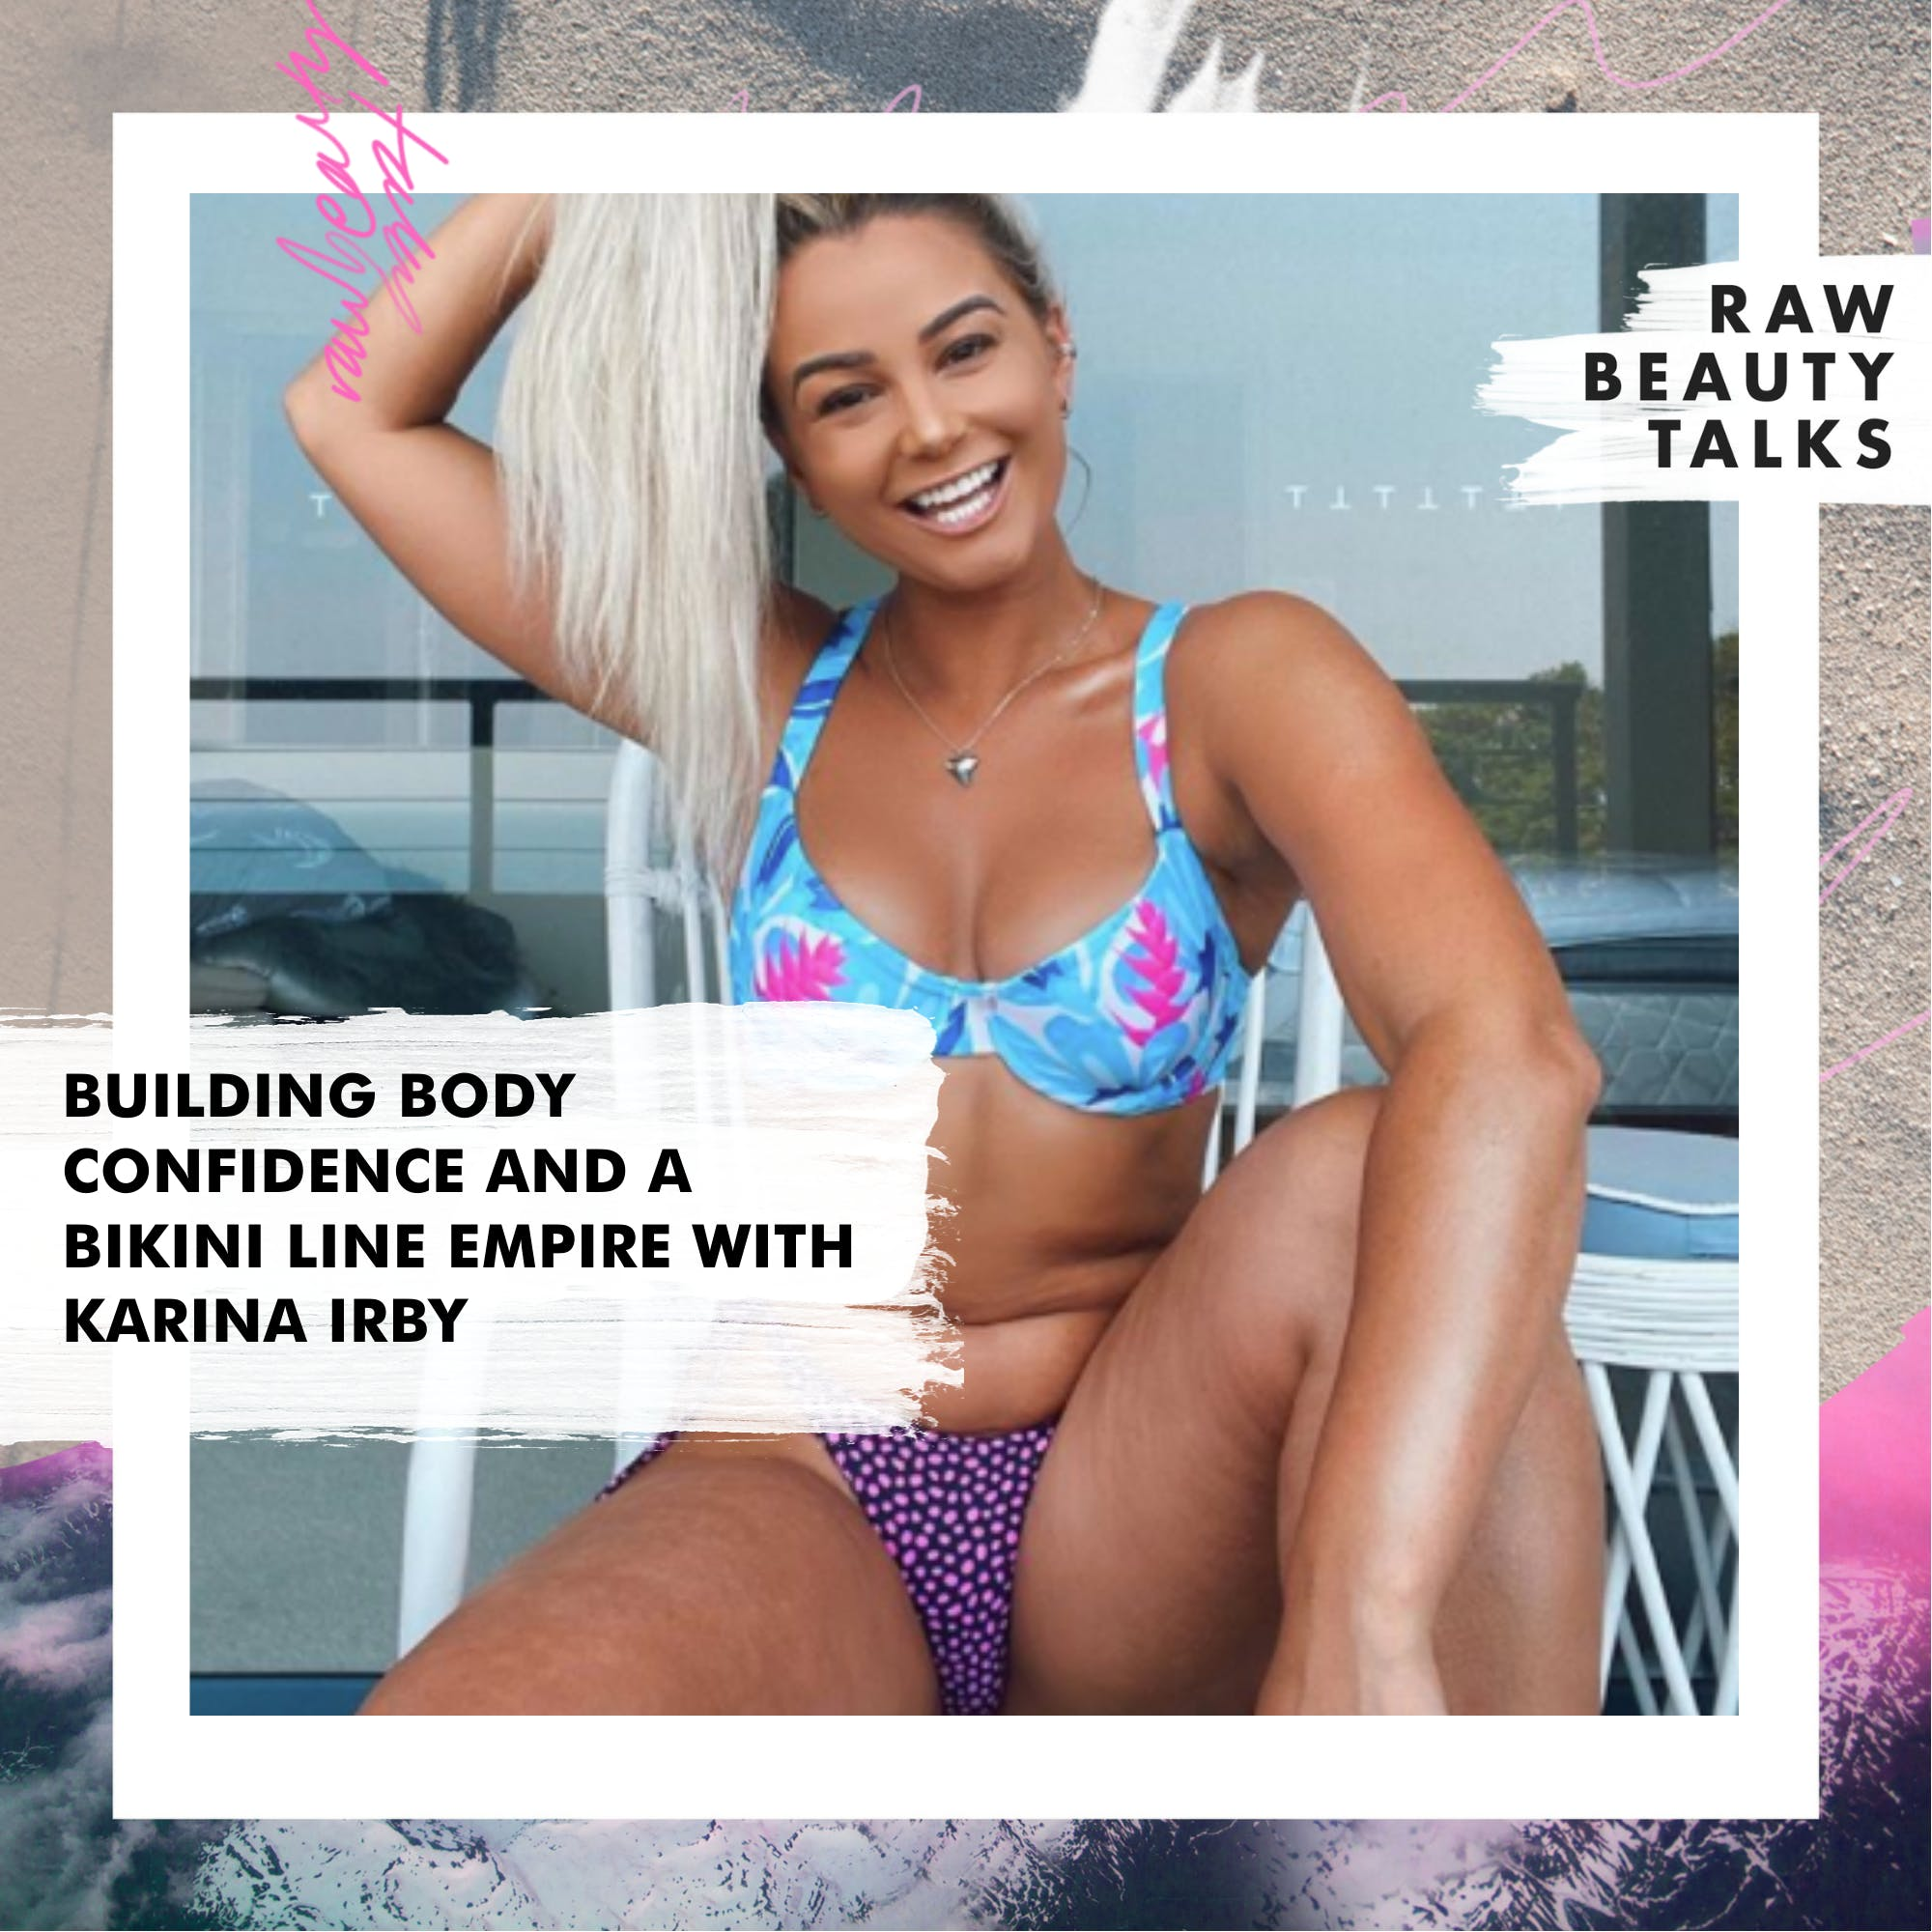 Building Body Confidence and a Bikini Line Empire with Karina Irby